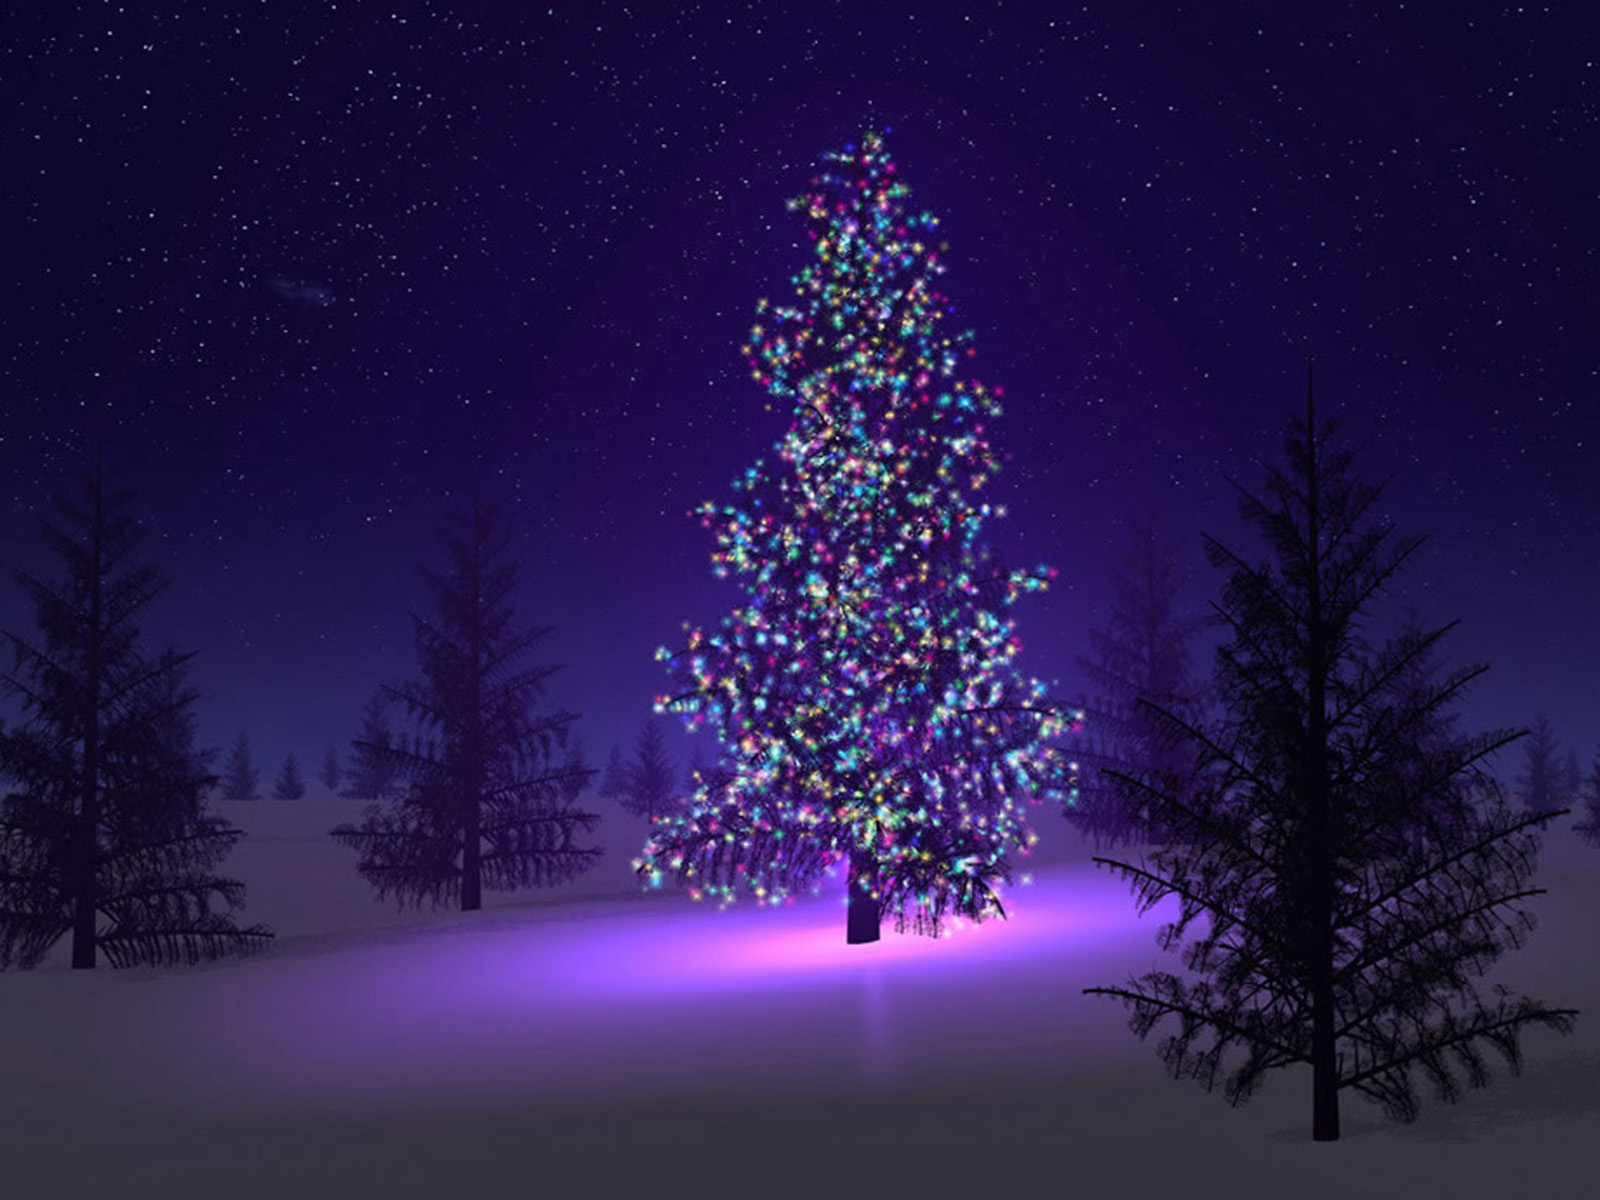 Wallpaper: Christmas Trees Wallpapers